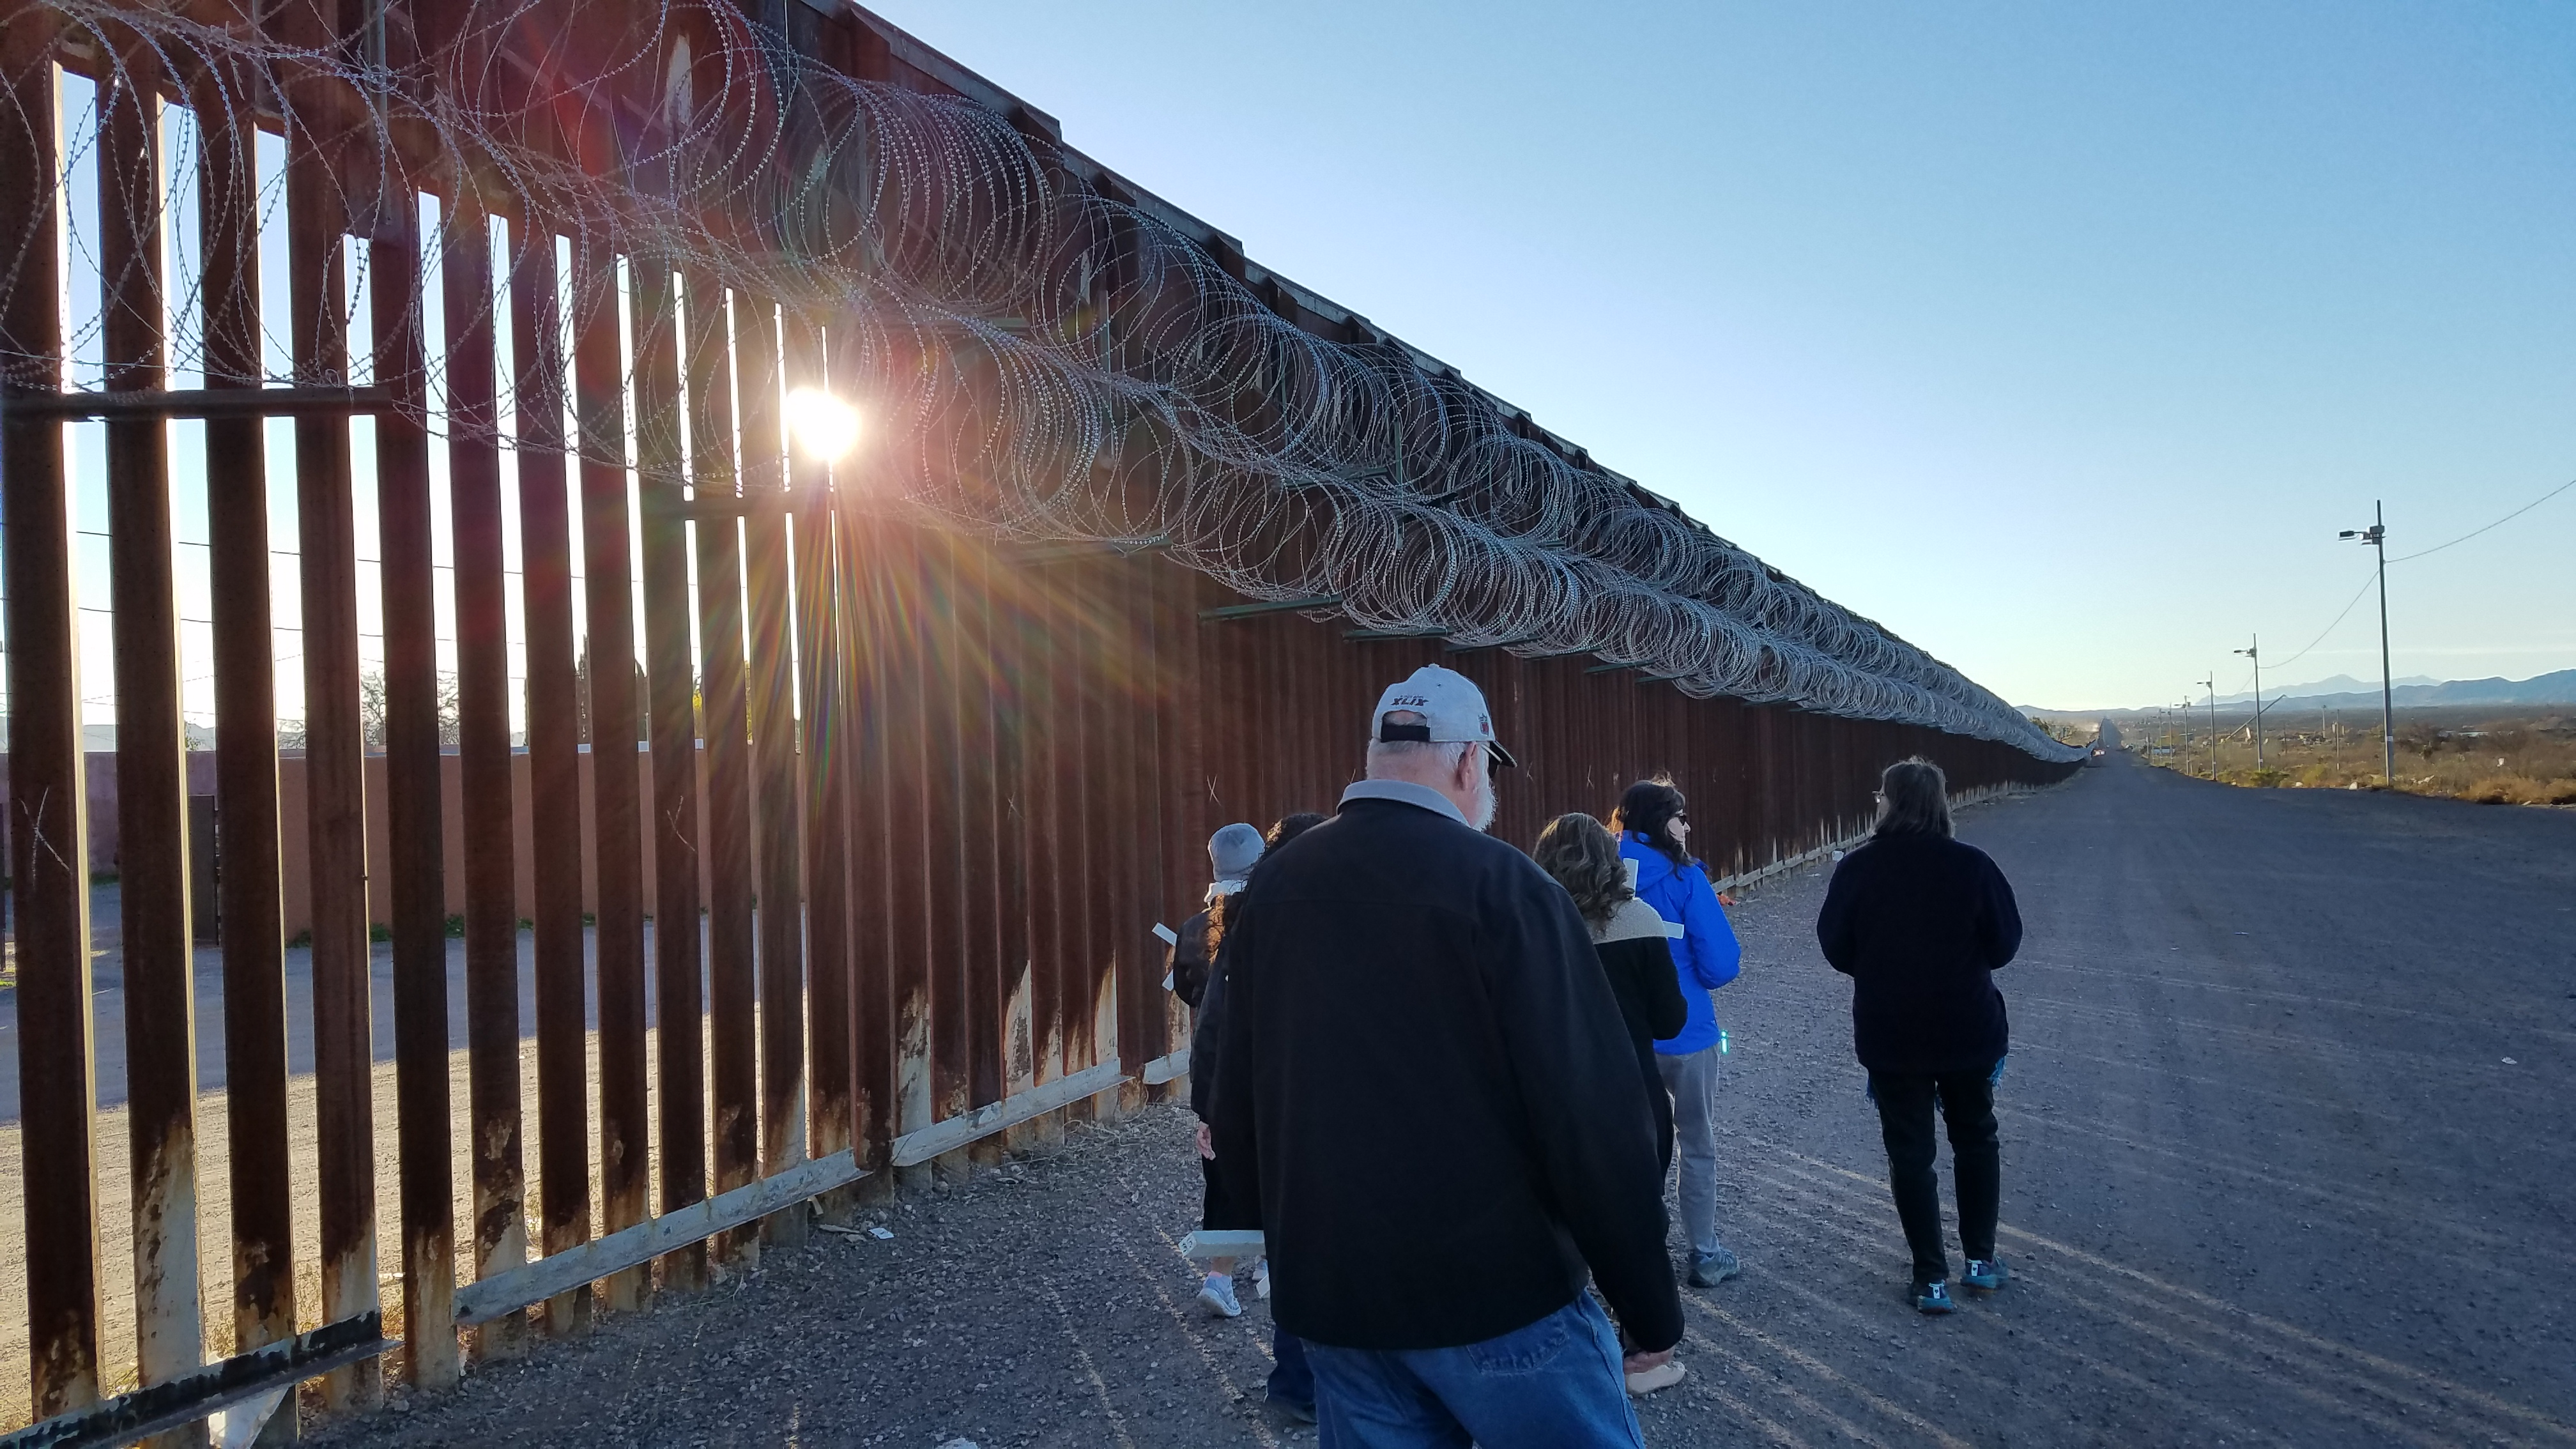 Participants in the Posada Sin Fronteras walking in the shadows of the steel dividing wall with newly installed concertina/razor wire on the United States/Mexico border.